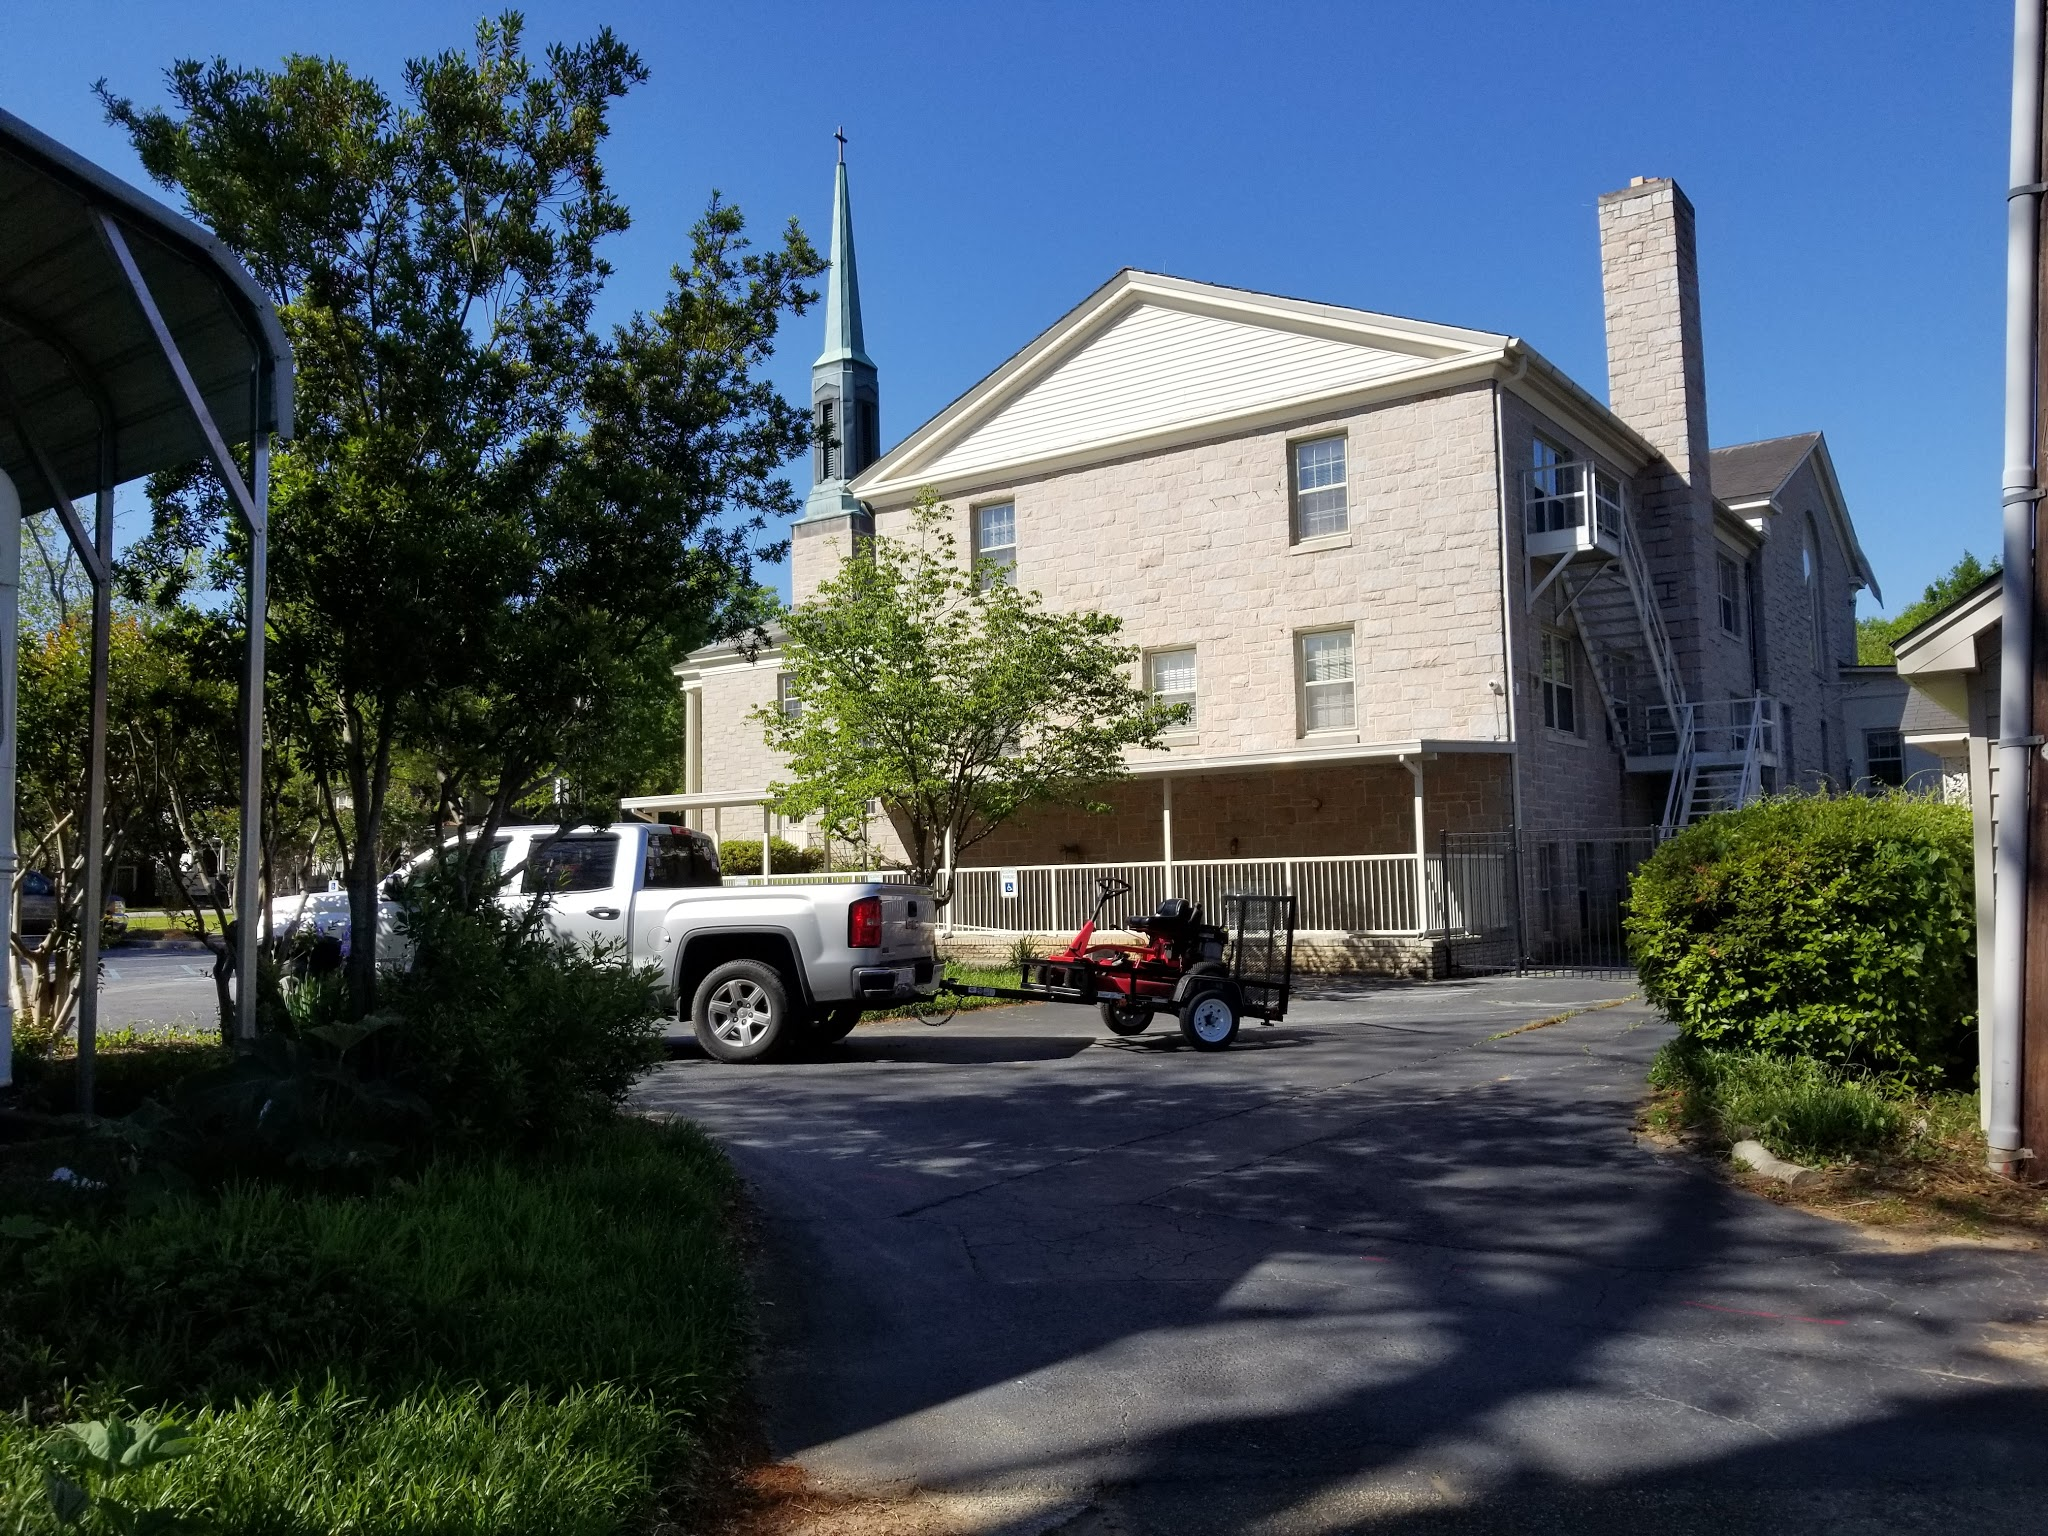 What does a picture of a lawnmower on a trailer have to do with Men's Ministry at Centennial ARP Church in Columbia, SC?